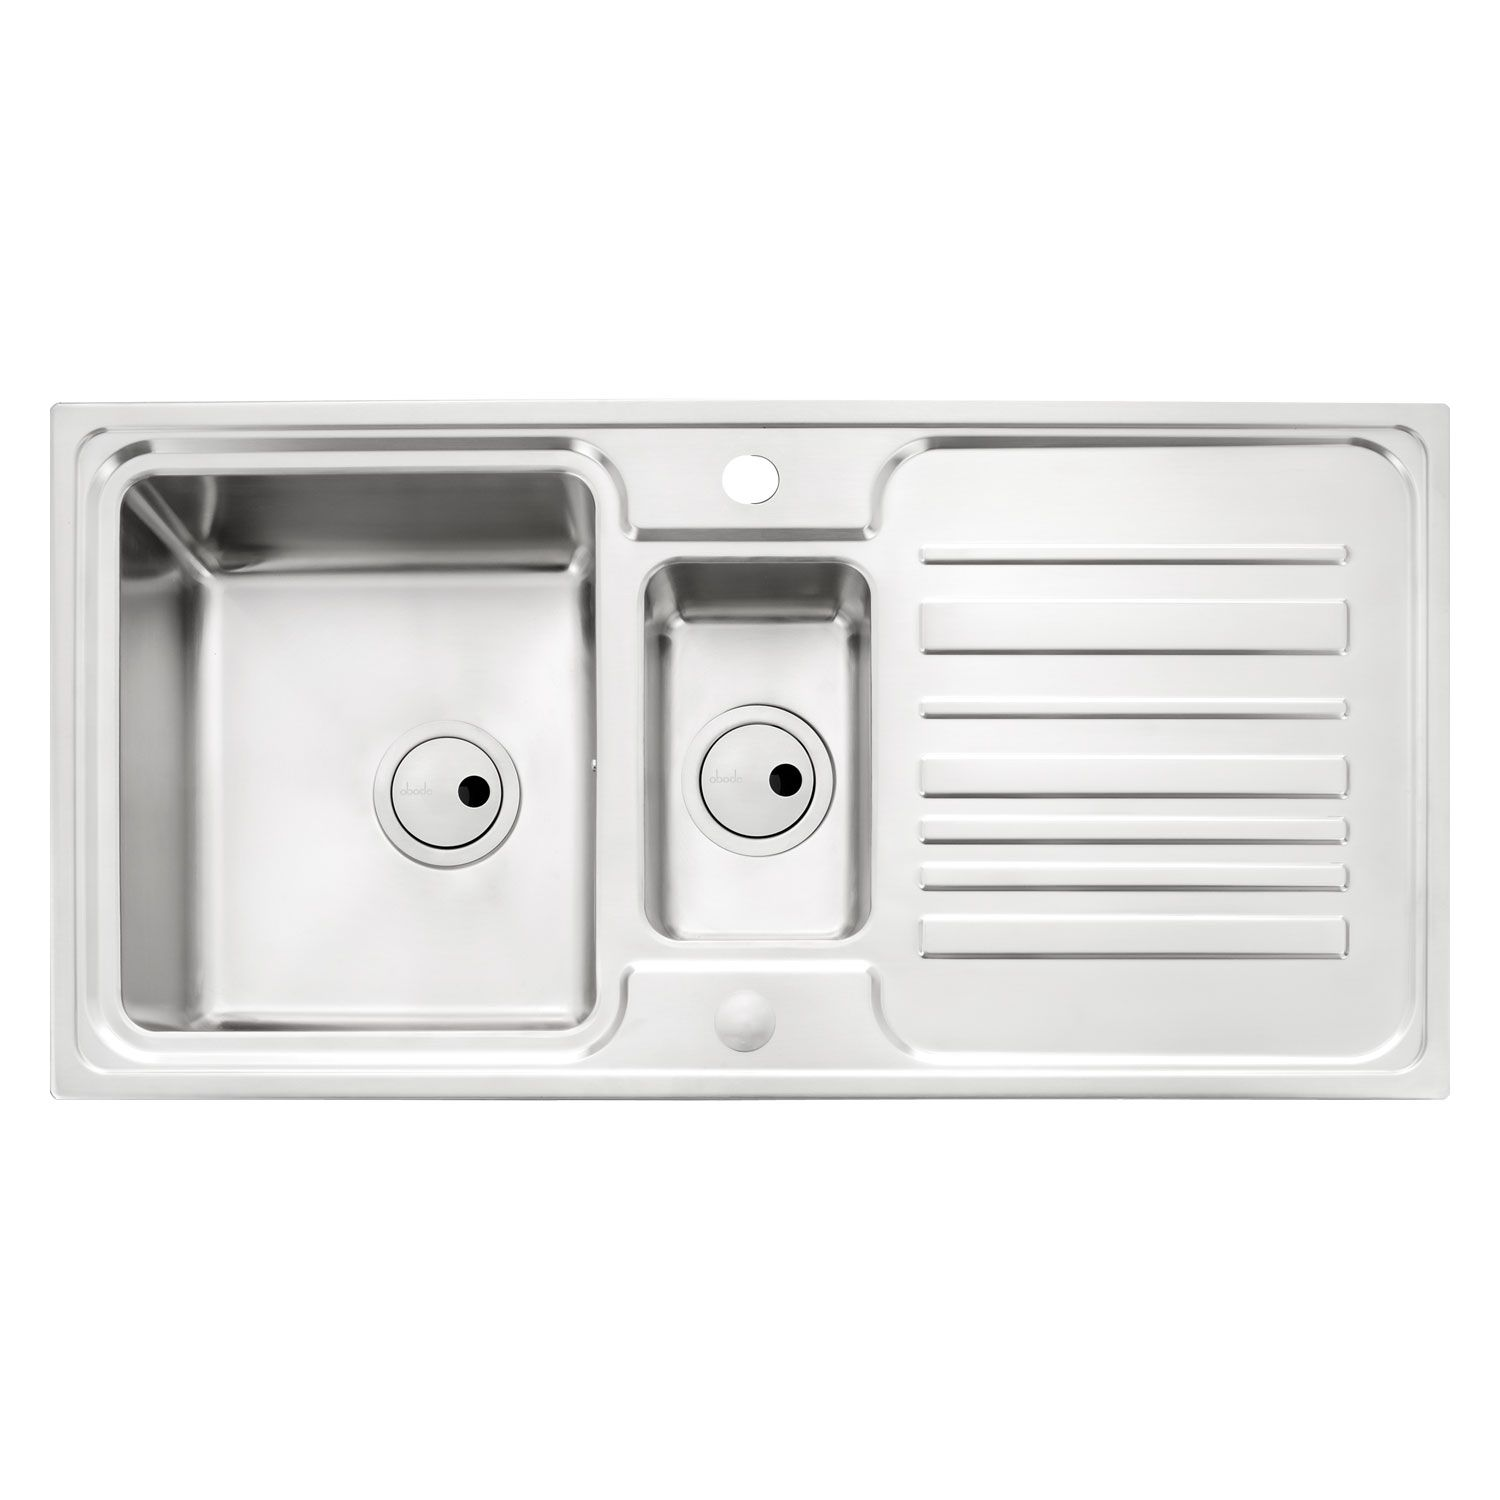 Medium image of apex 1 5 bowl stainless steel kitchen sink